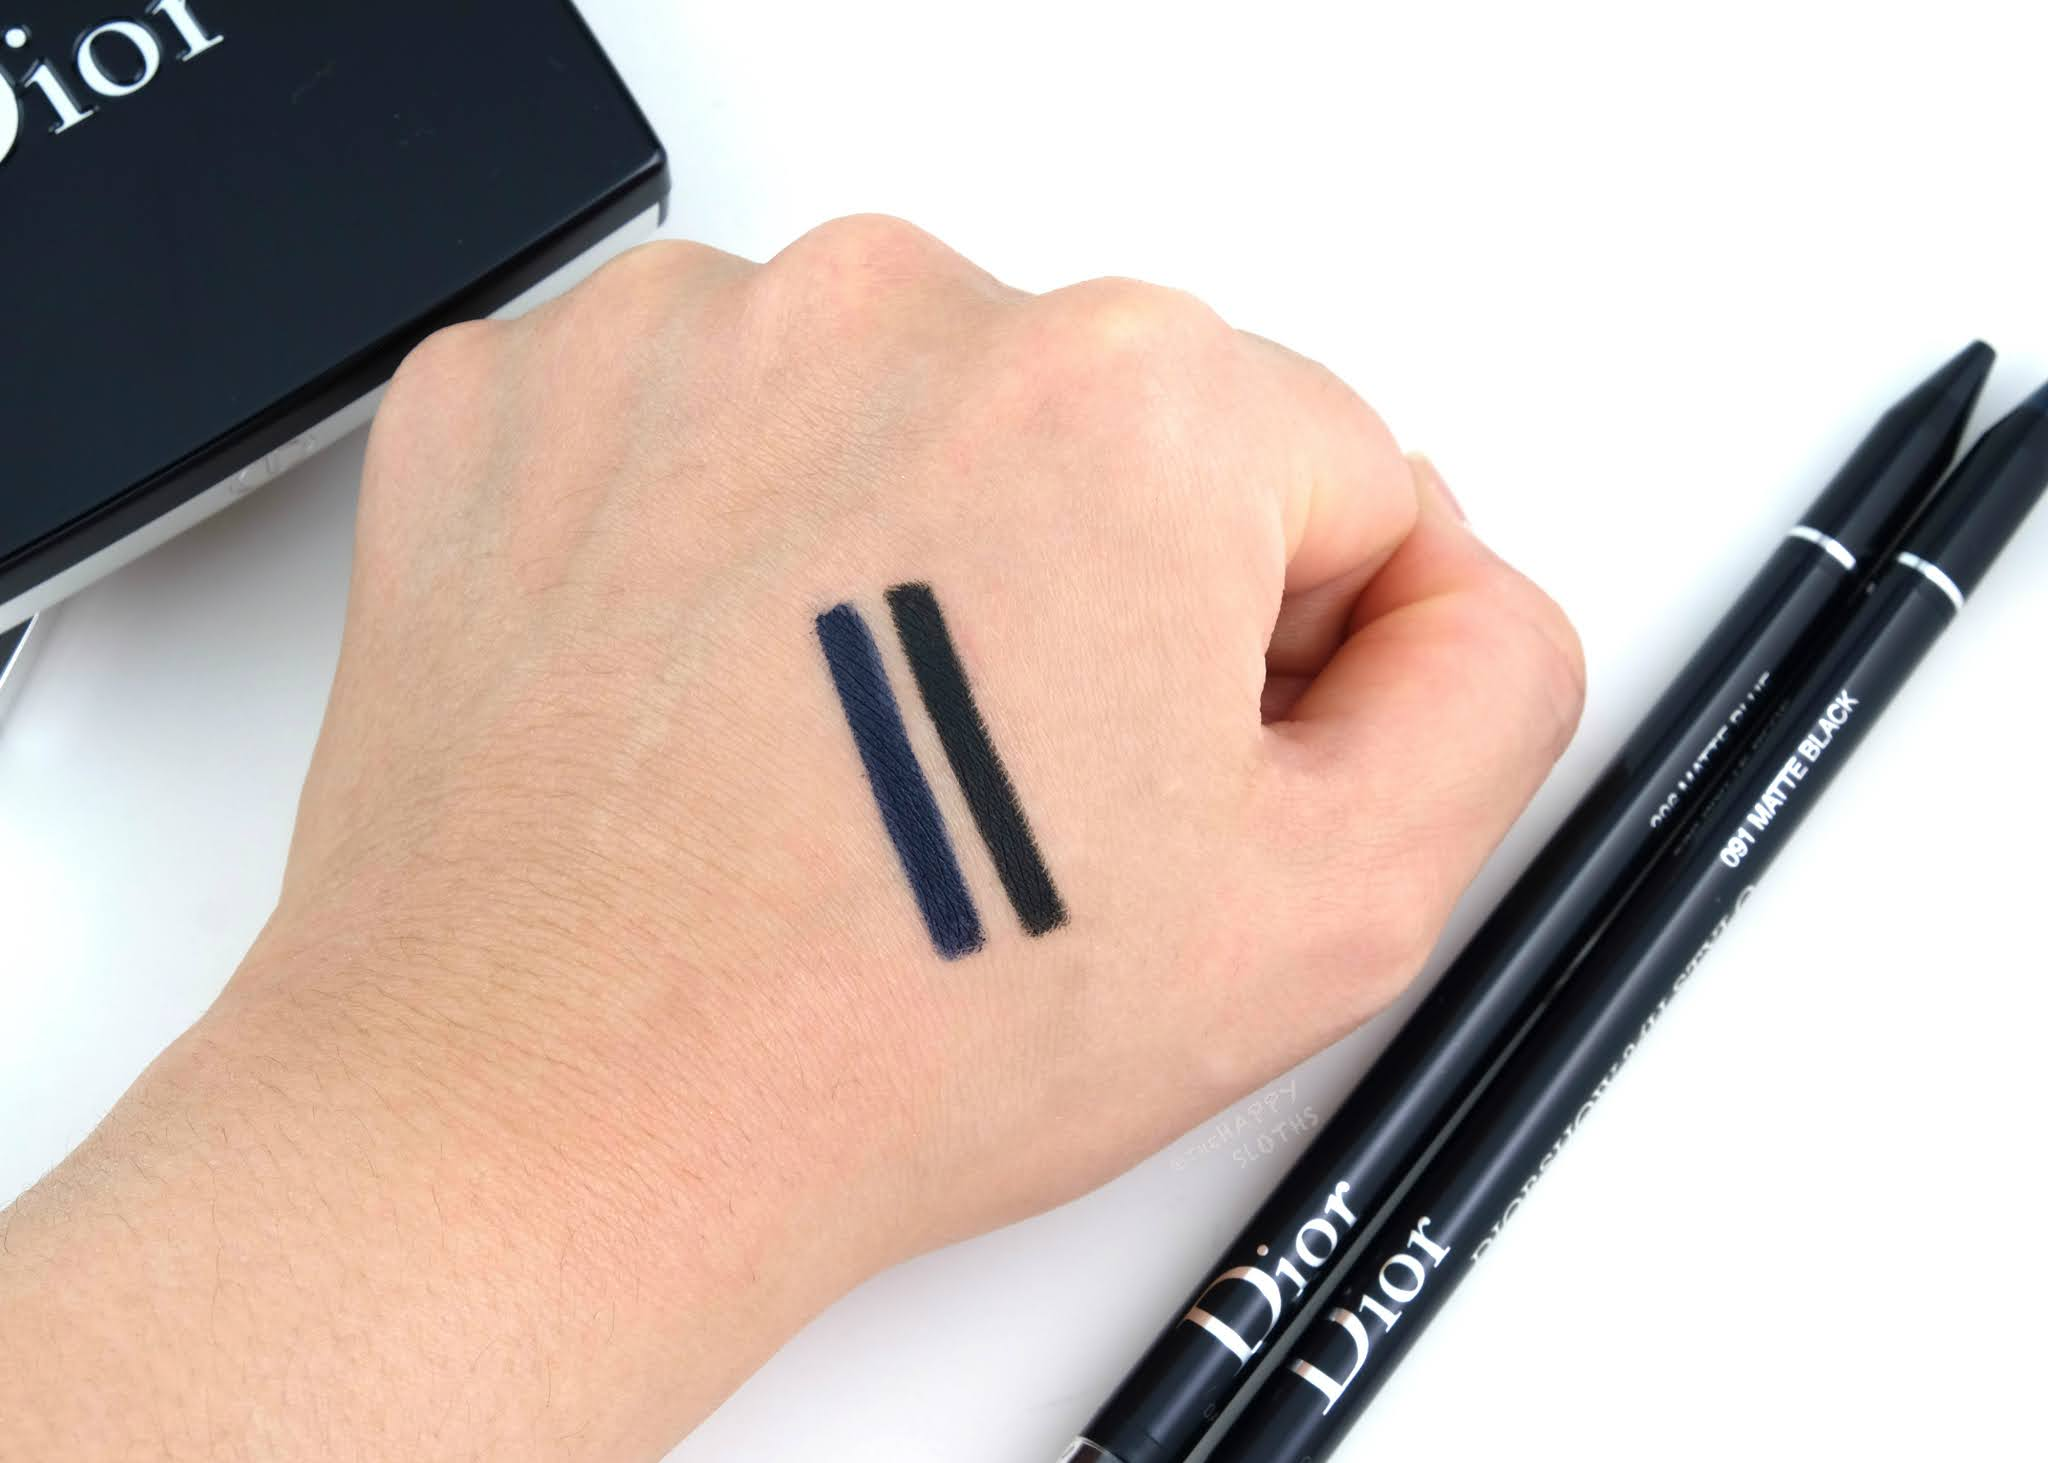 Dior | Diorshow 24H Stylo Waterproof Eyeliner: Review and Swatches